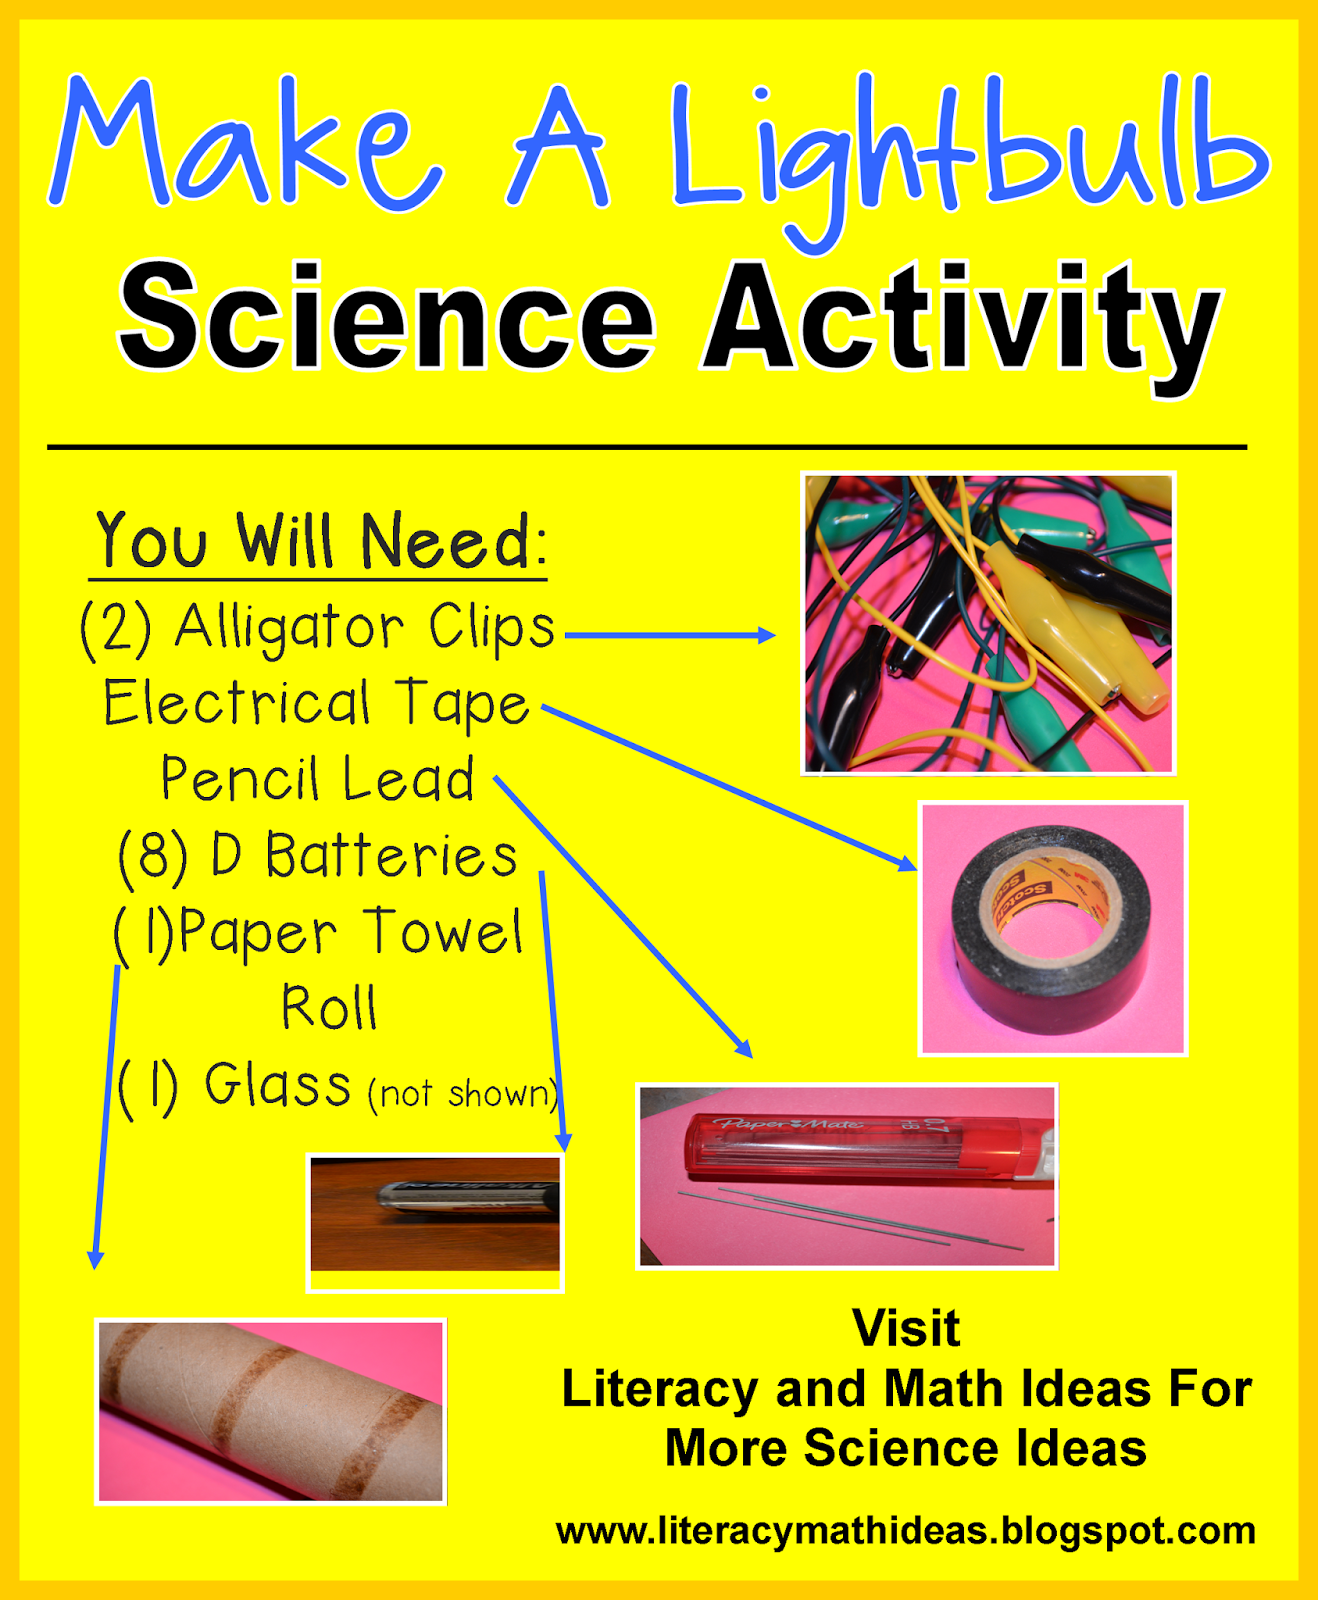 If You Are Looking For A Fun Science Project Or Science